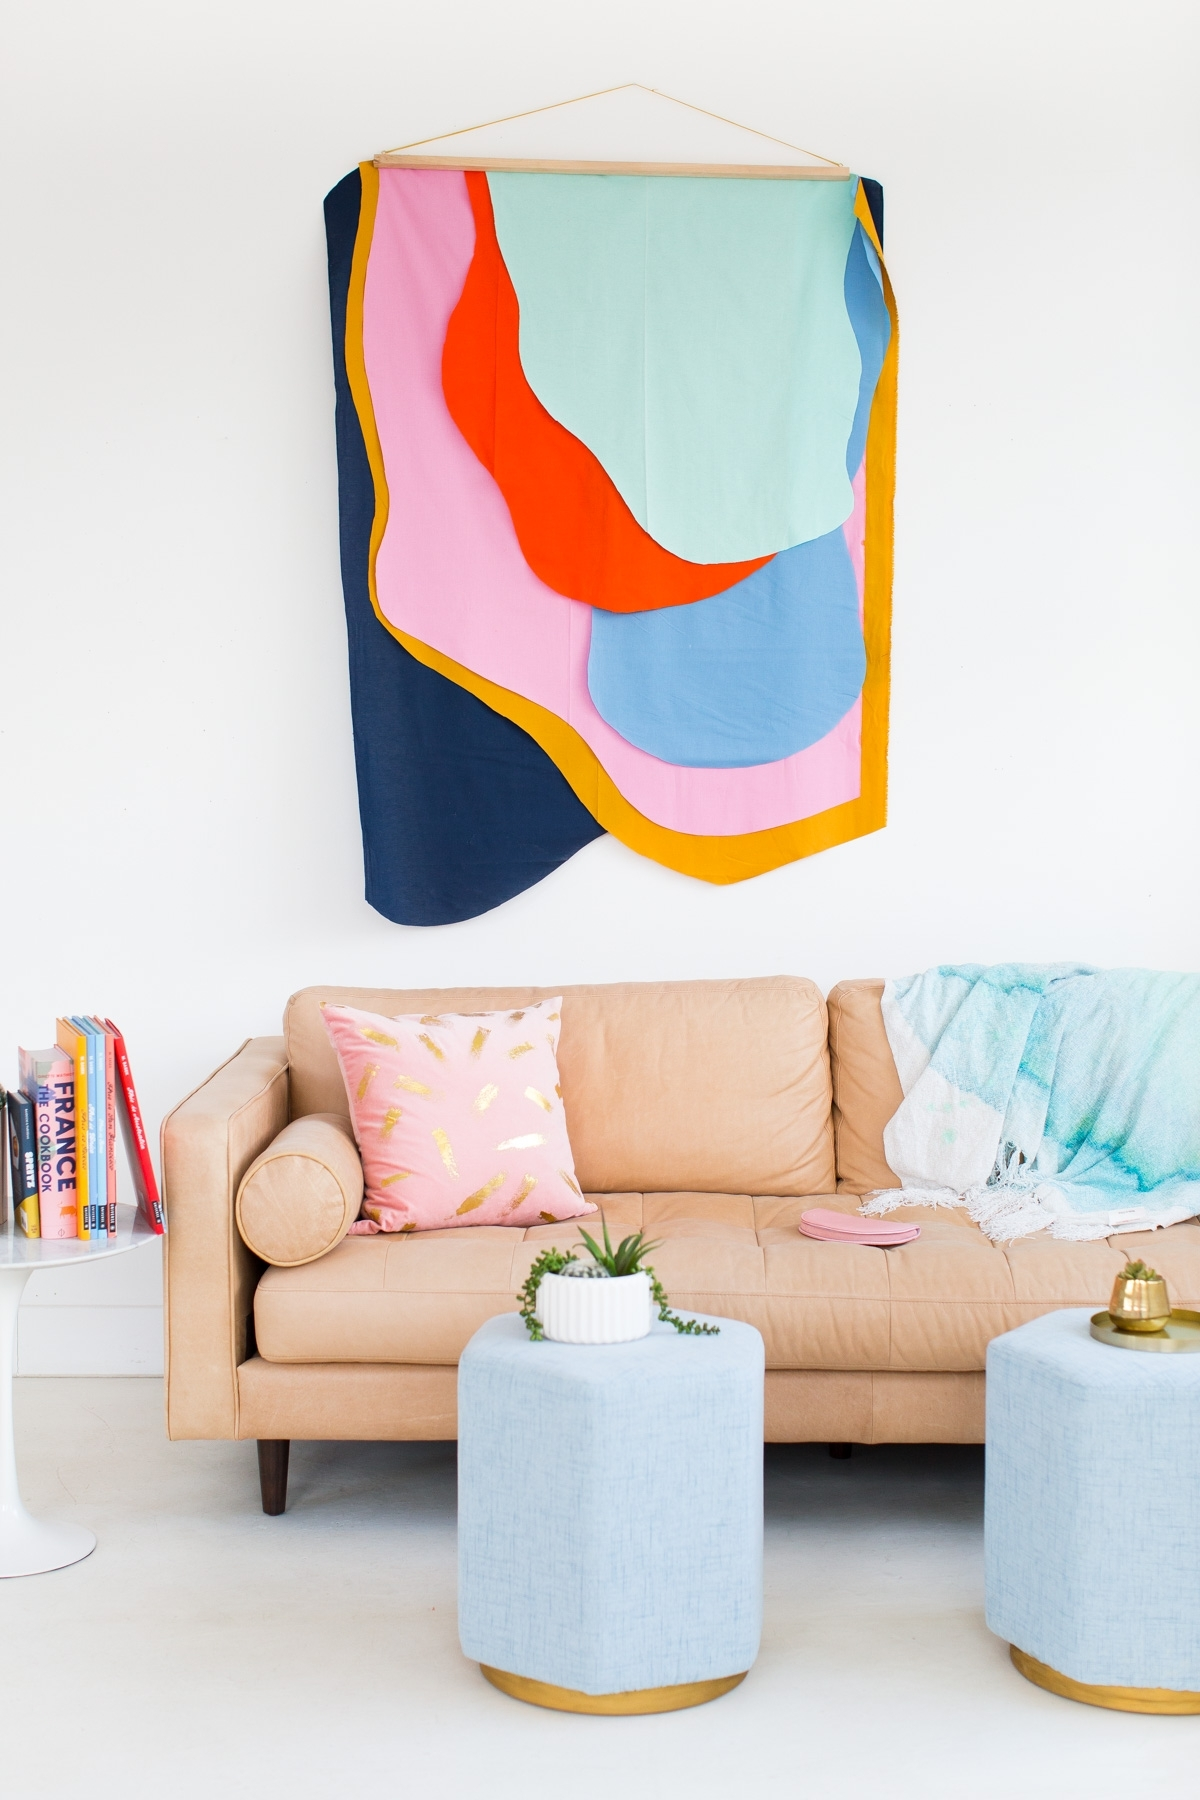 Diy Wall Art Gallery | Craftgawker With Regard To Latest Modern Fabric Wall Art (View 3 of 15)